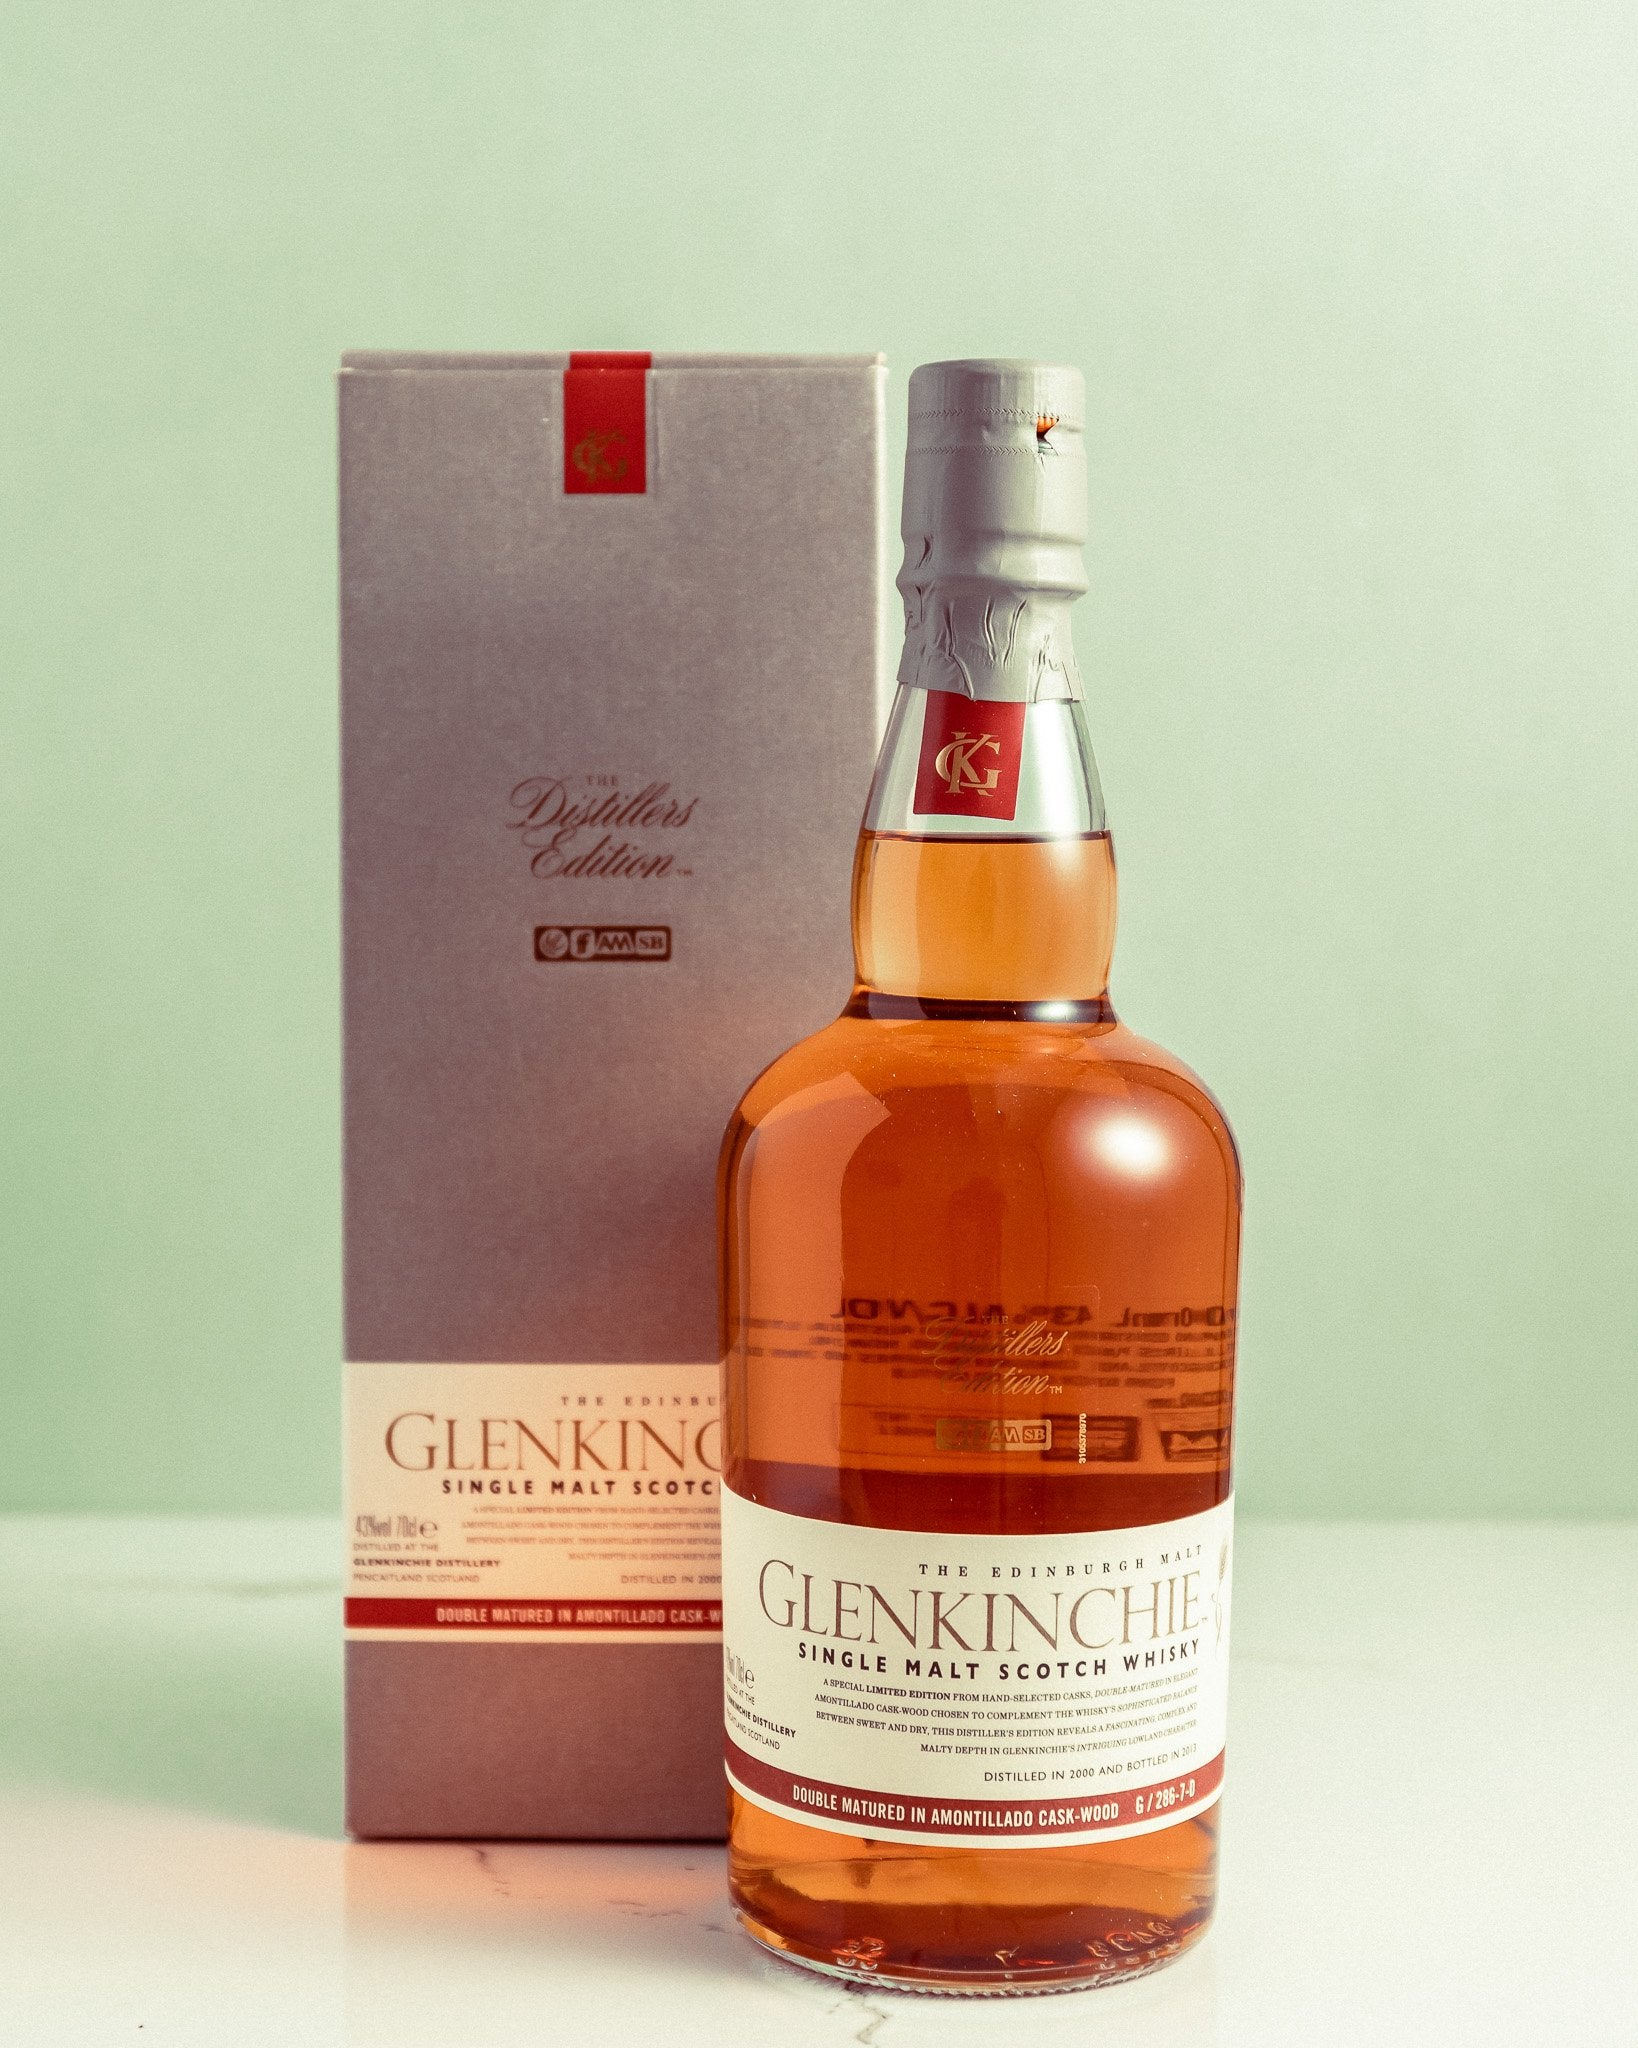 Glenkinchie Distillers Edition 2013